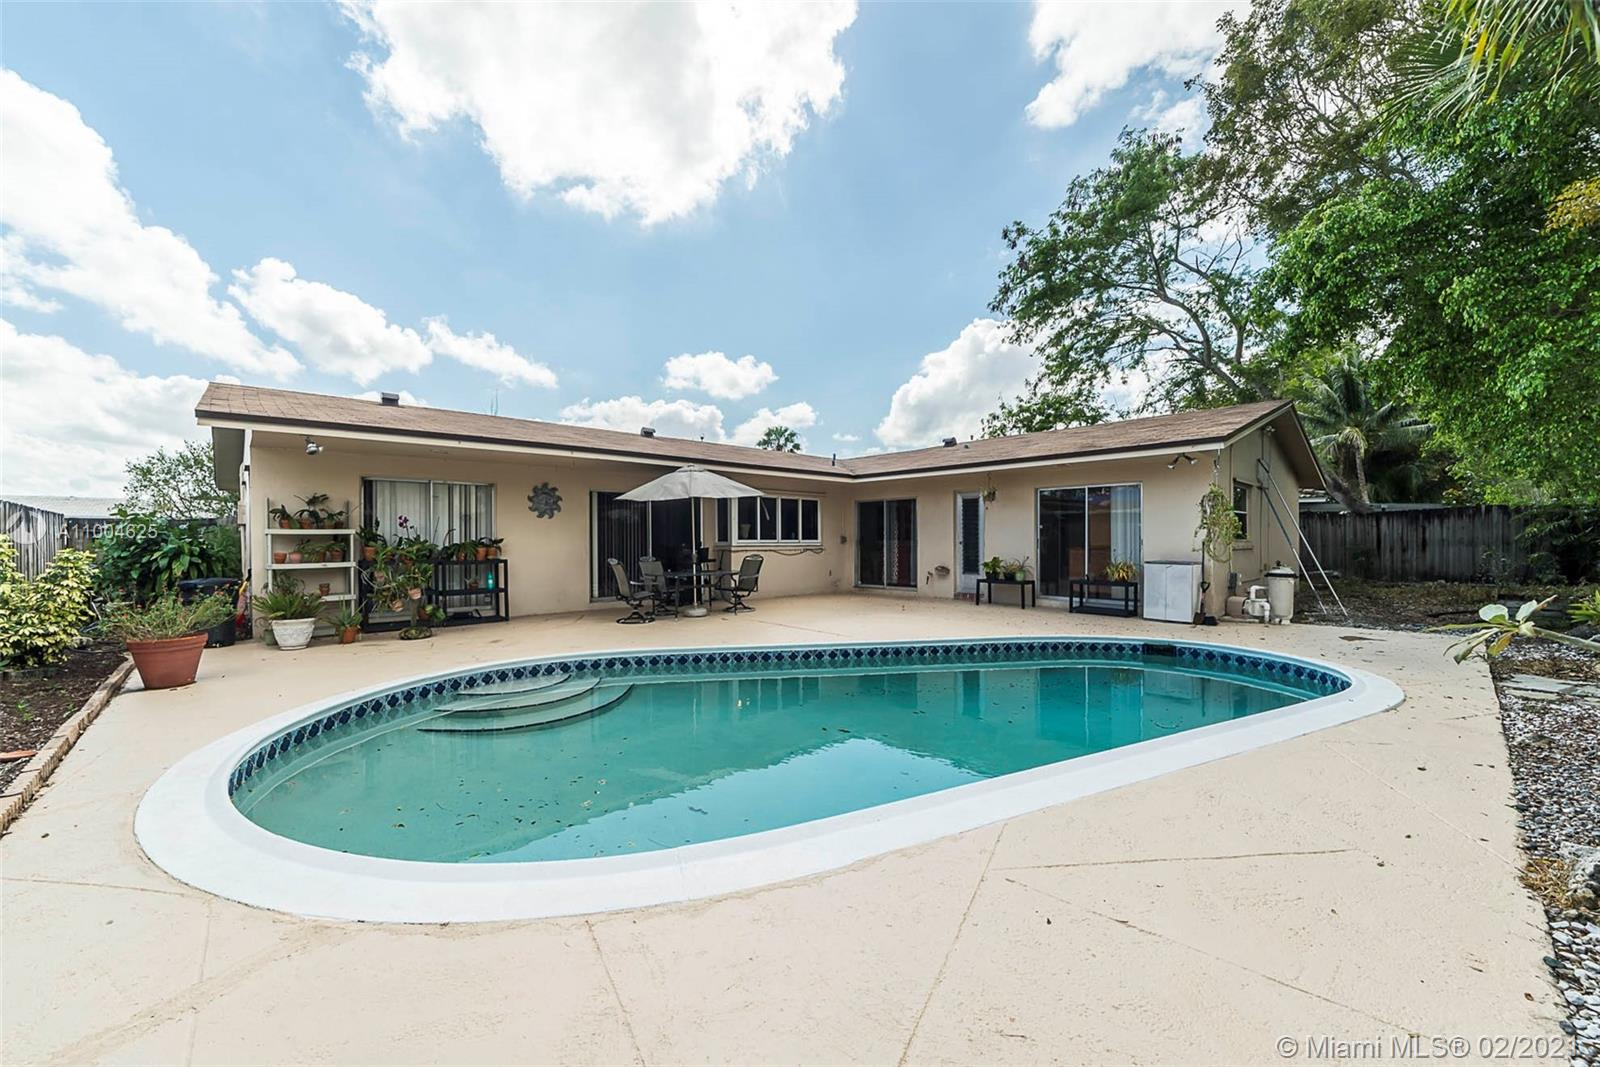 MOVE IN READY! It's a great day to buy a home! This spacious 4/3 Pool home located on a quiet street in Tamarac!  Pool is situated in a spacious gated yard that also features a wonderful pass-through to the kitchen, that is perfect for entertaining.  Tile throughout the main house with updated kitchen and bathrooms. Split floor plan is perfect for your family! The home has an attached 2 car garage and a new roof as of 2018!  Open House Sunday, Feb 28th, 2021